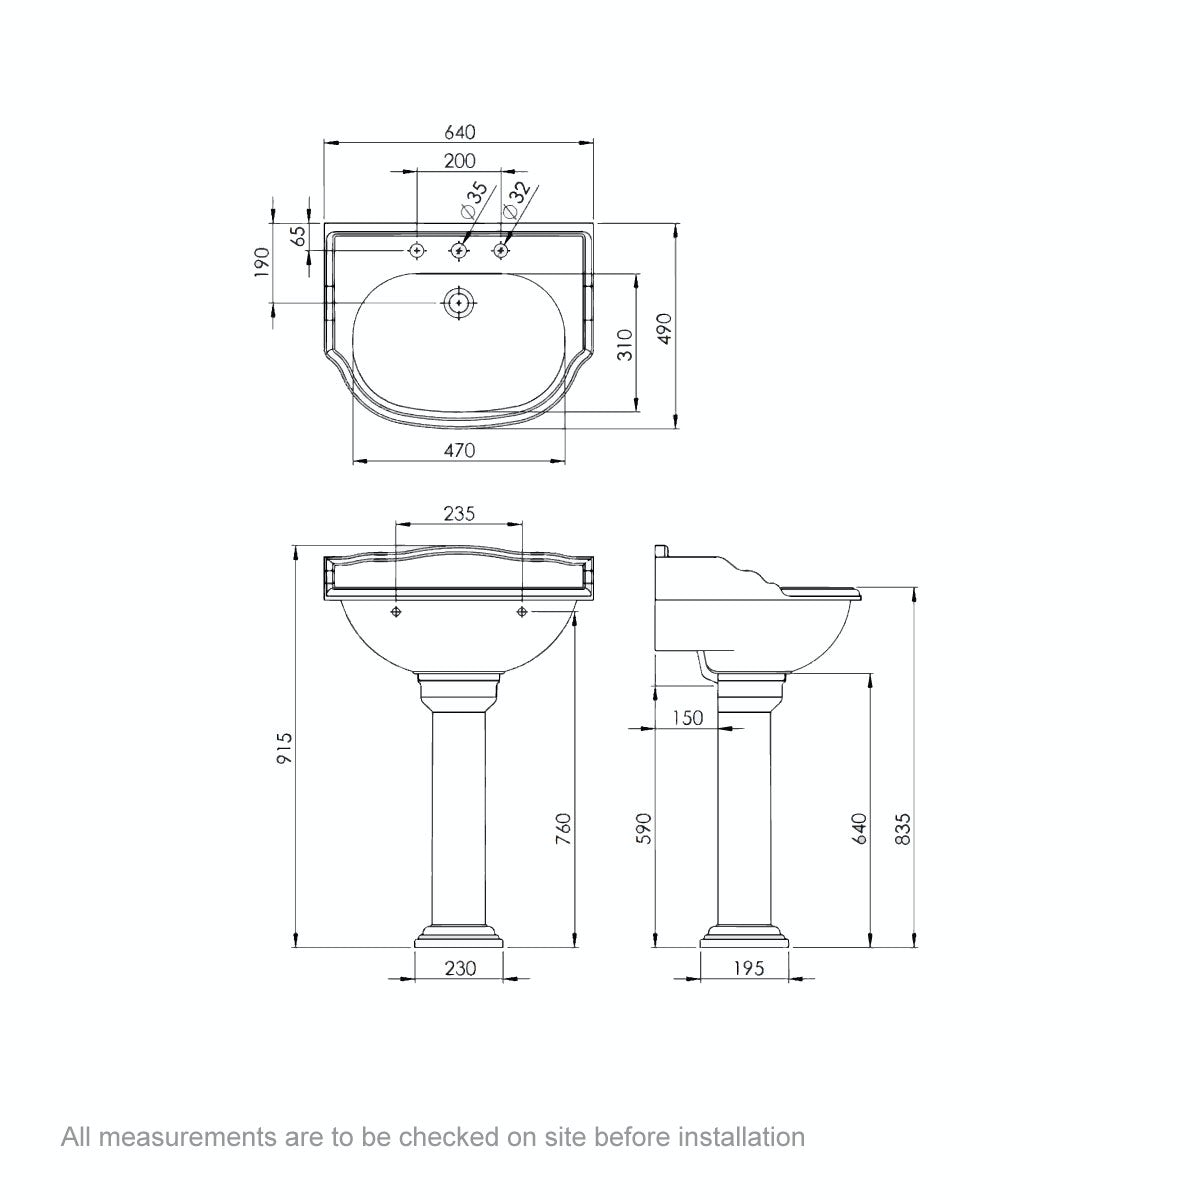 Dimensions for Belle de Louvain Bellini high level toilet and full pedestal suite with incalux fittings and taps